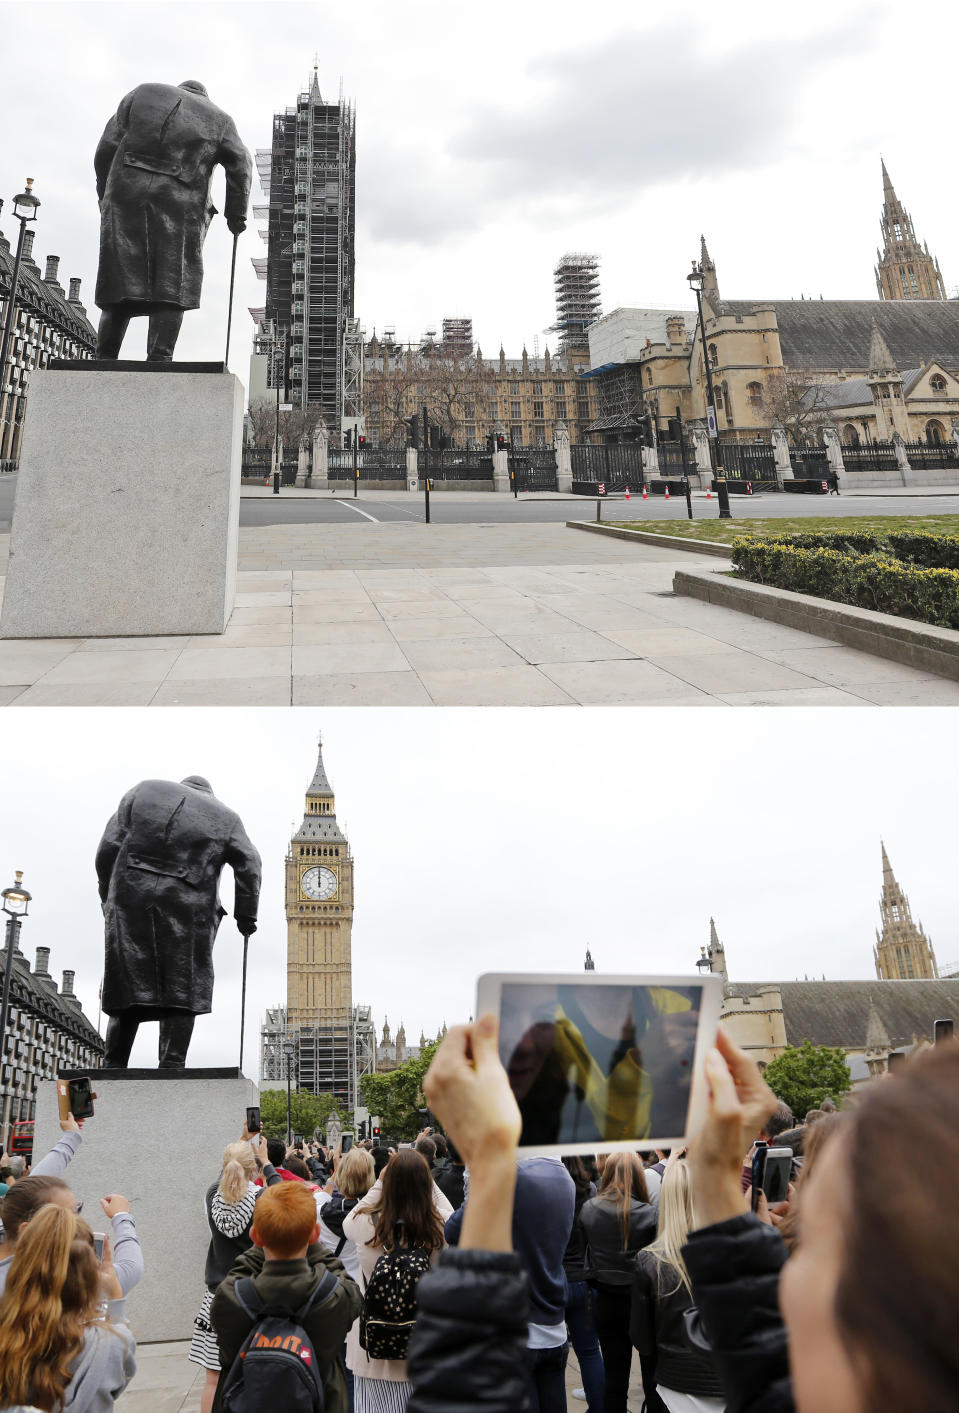 A combo of images shows people recording the last bell bong of Big Ben housed inside Elizabeth Tower in London on Monday, Aug. 21, 2017 and the same view except this time an empty scene take on Wednesday, April 1, 2020. When Associated Press photographer Frank Augstein moved to London in 2015, what struck him most was the crowds. In years of covering political dramas, moments of celebration and tragedy and major sporting events, Augstein's photographs have captured the city's ceaseless movement: Pedestrians swarming over the Millennium footbridge spanning the River Thames. Travelers from the U.K. and continental Europe thronging St. Pancras railway station. Commuters following London transit etiquette by carefully ignoring one another on a crowded Tube train, or waiting patiently in a snaking bus queue. Augstein revisited those sites in recent days after Britain — like other countries around the world — went into effective lockdown to stem the spread of the new coronavirus. (AP Photo/Frank Augstein)